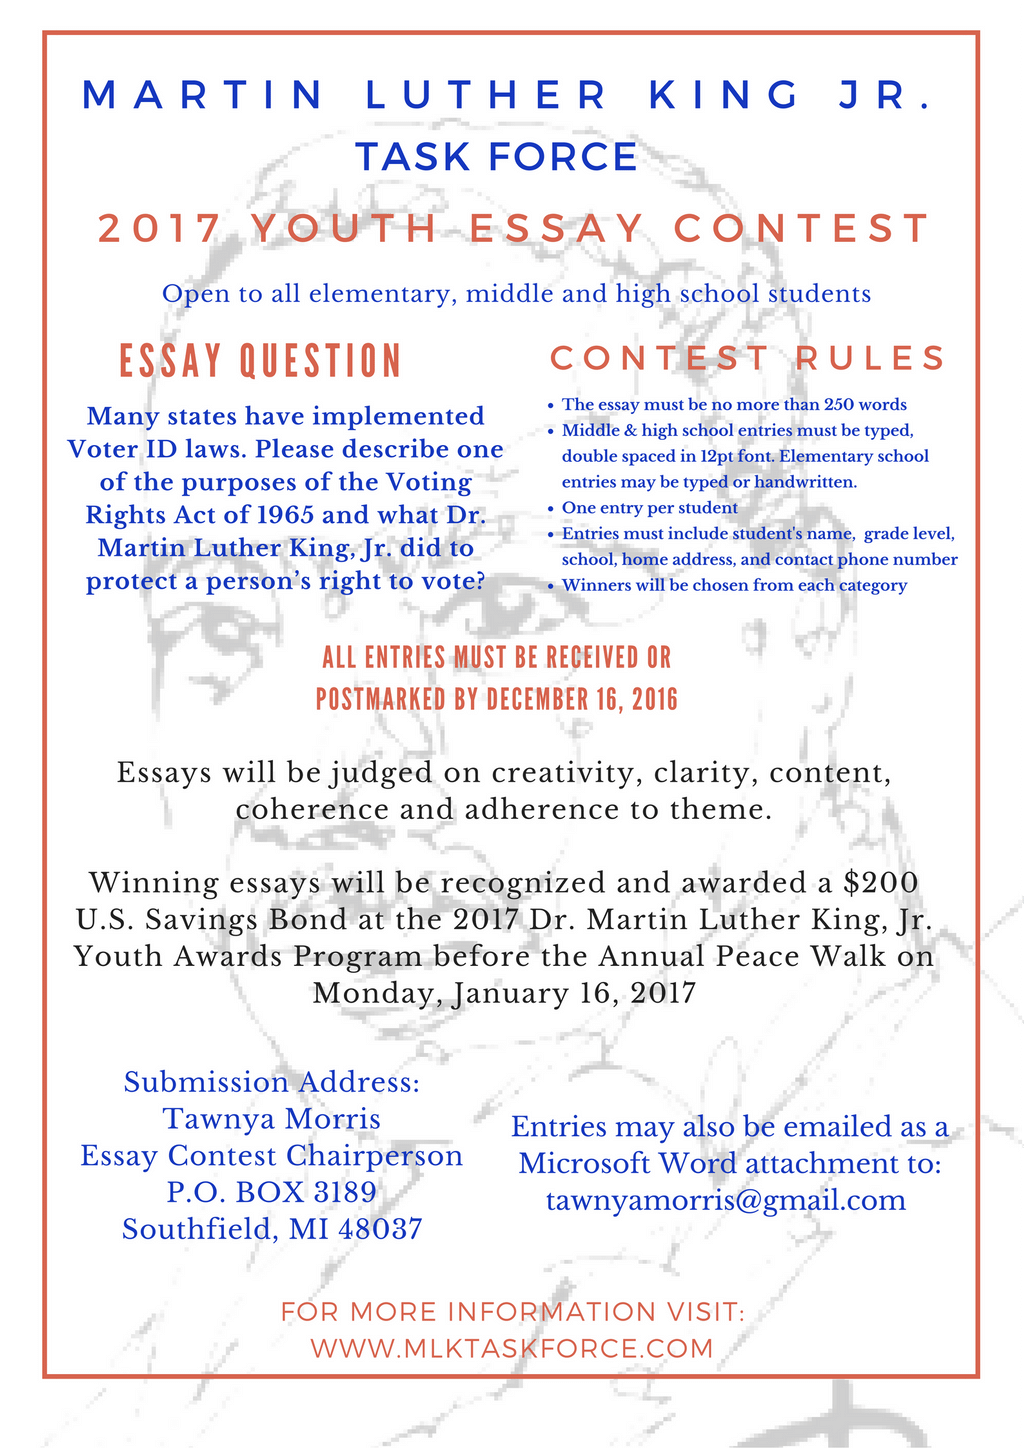 mlk essays dr martin luther king jr task force inc essay essay on  dr martin luther king jr task force inc the flyer for our 2017 youth essay contest